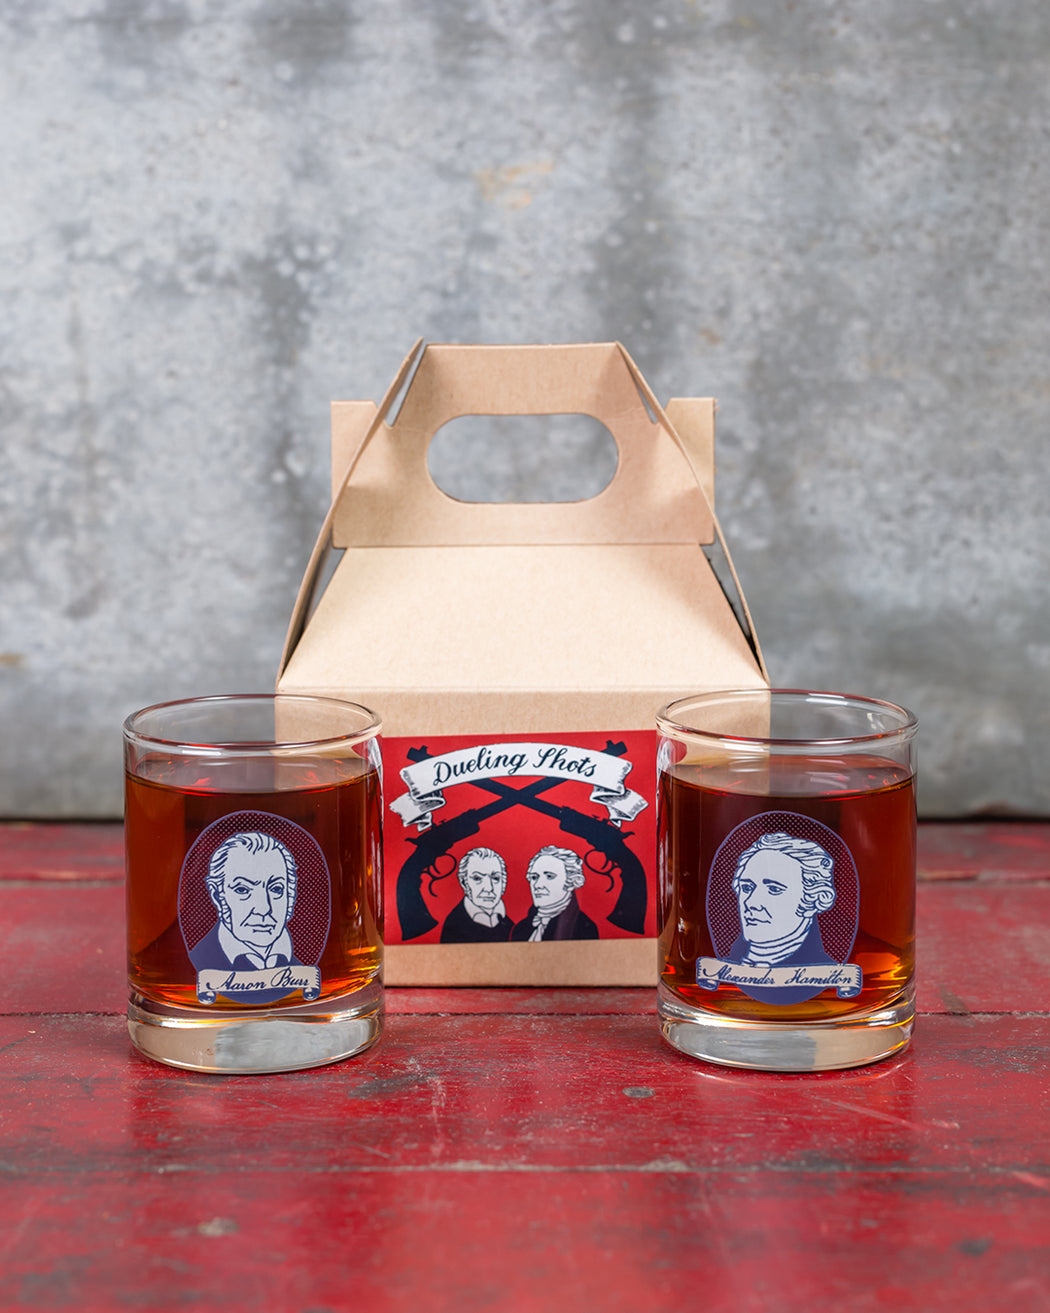 Dueling Shots Gift Box - Hamilton and Burr - Fishs Eddy